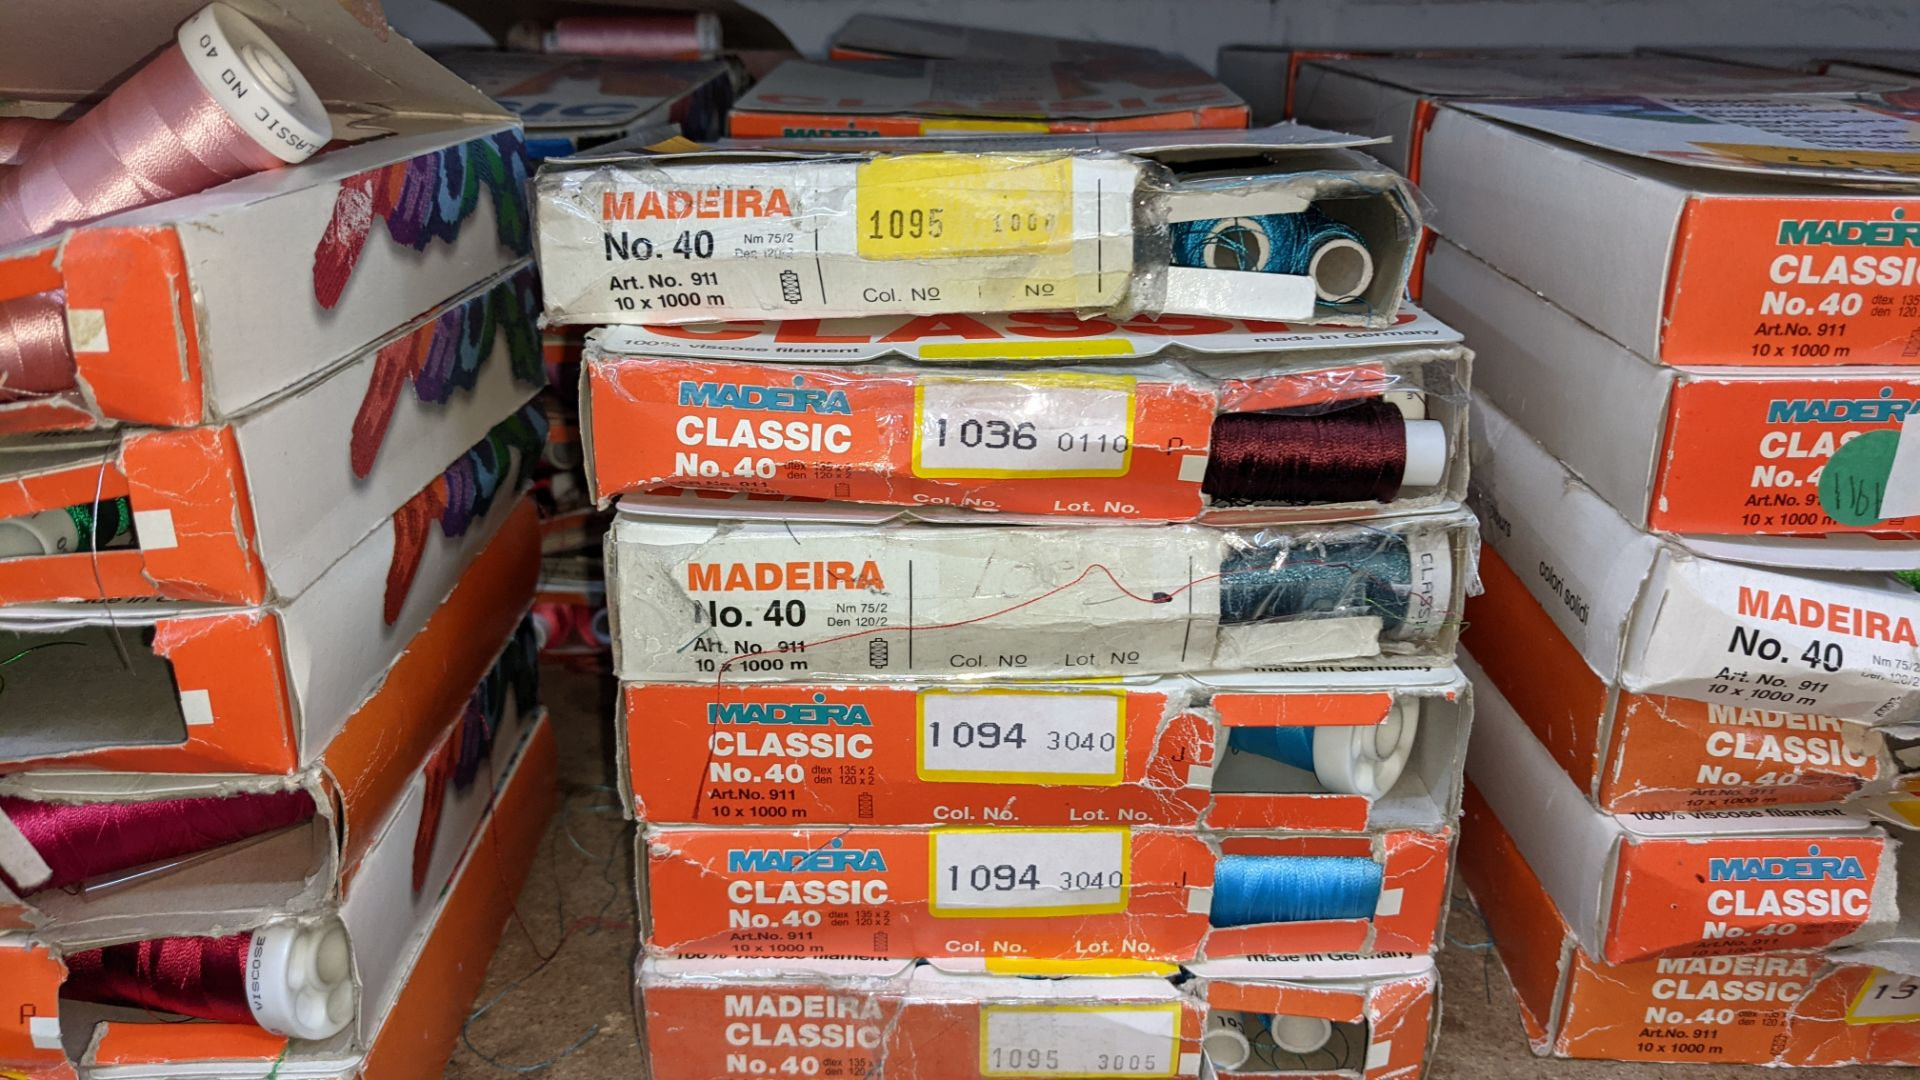 18 assorted boxes of Madeira Classic No. 40 embroidery rayon thread - Image 3 of 8